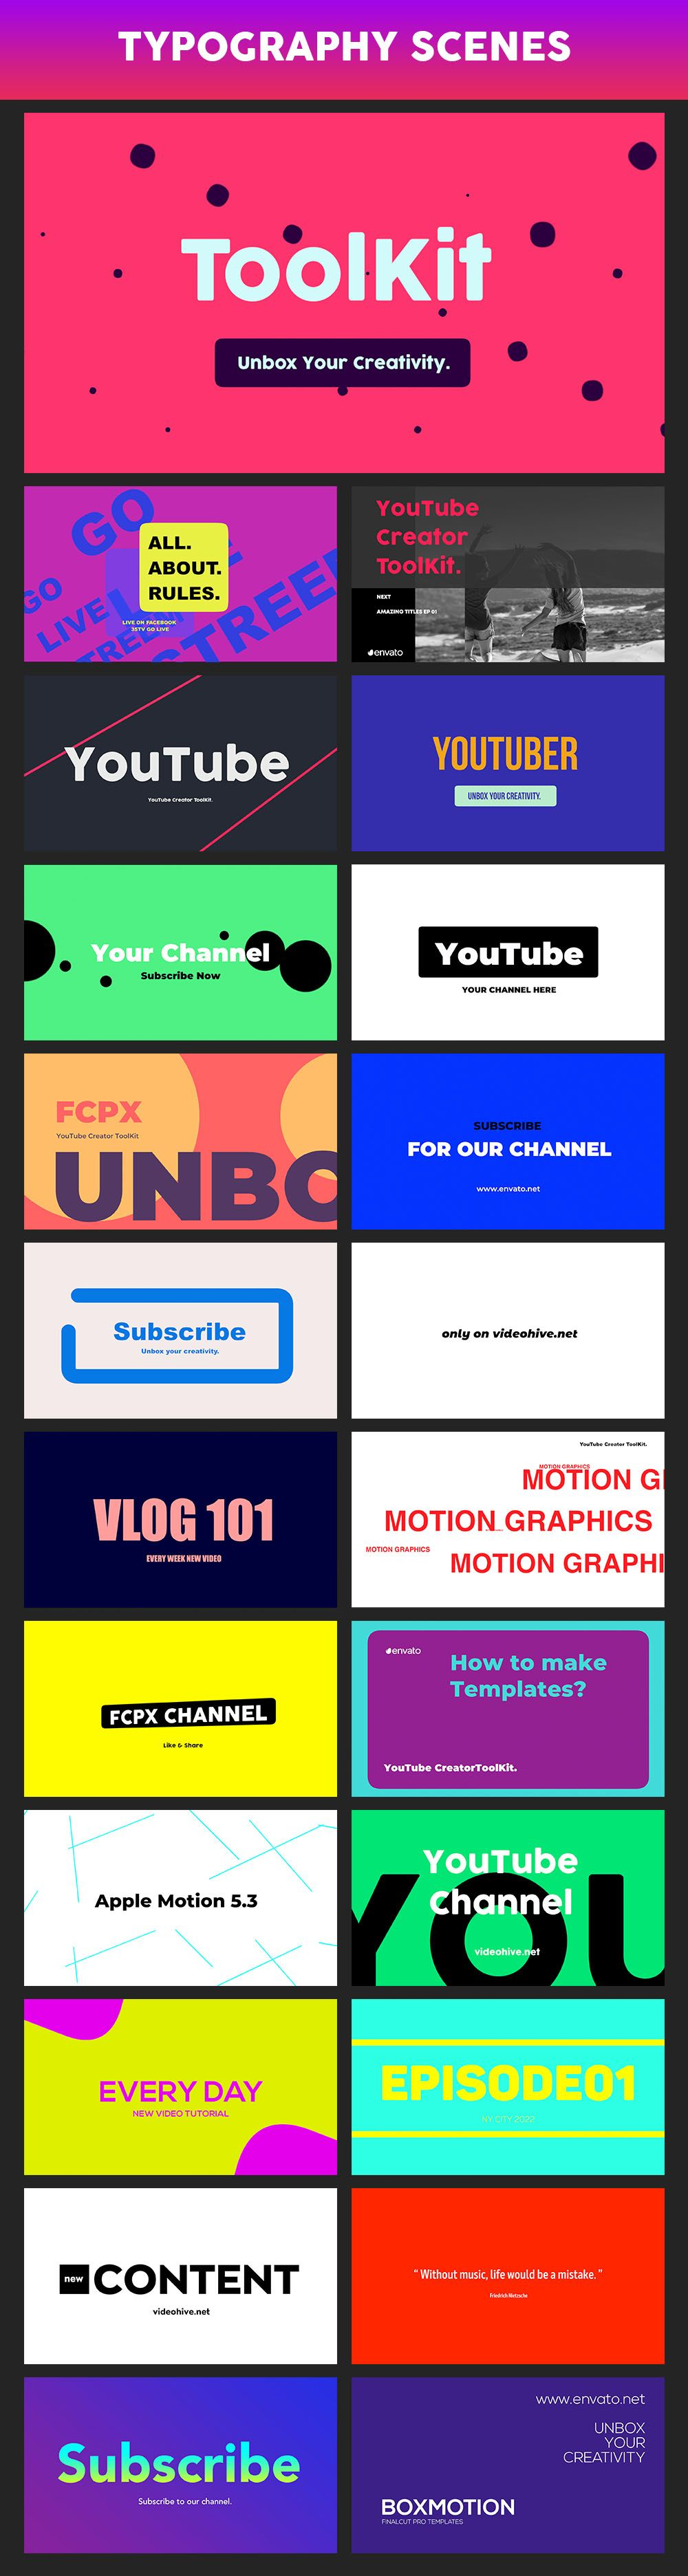 YouTube FCPX Creator Tool Kit - 54